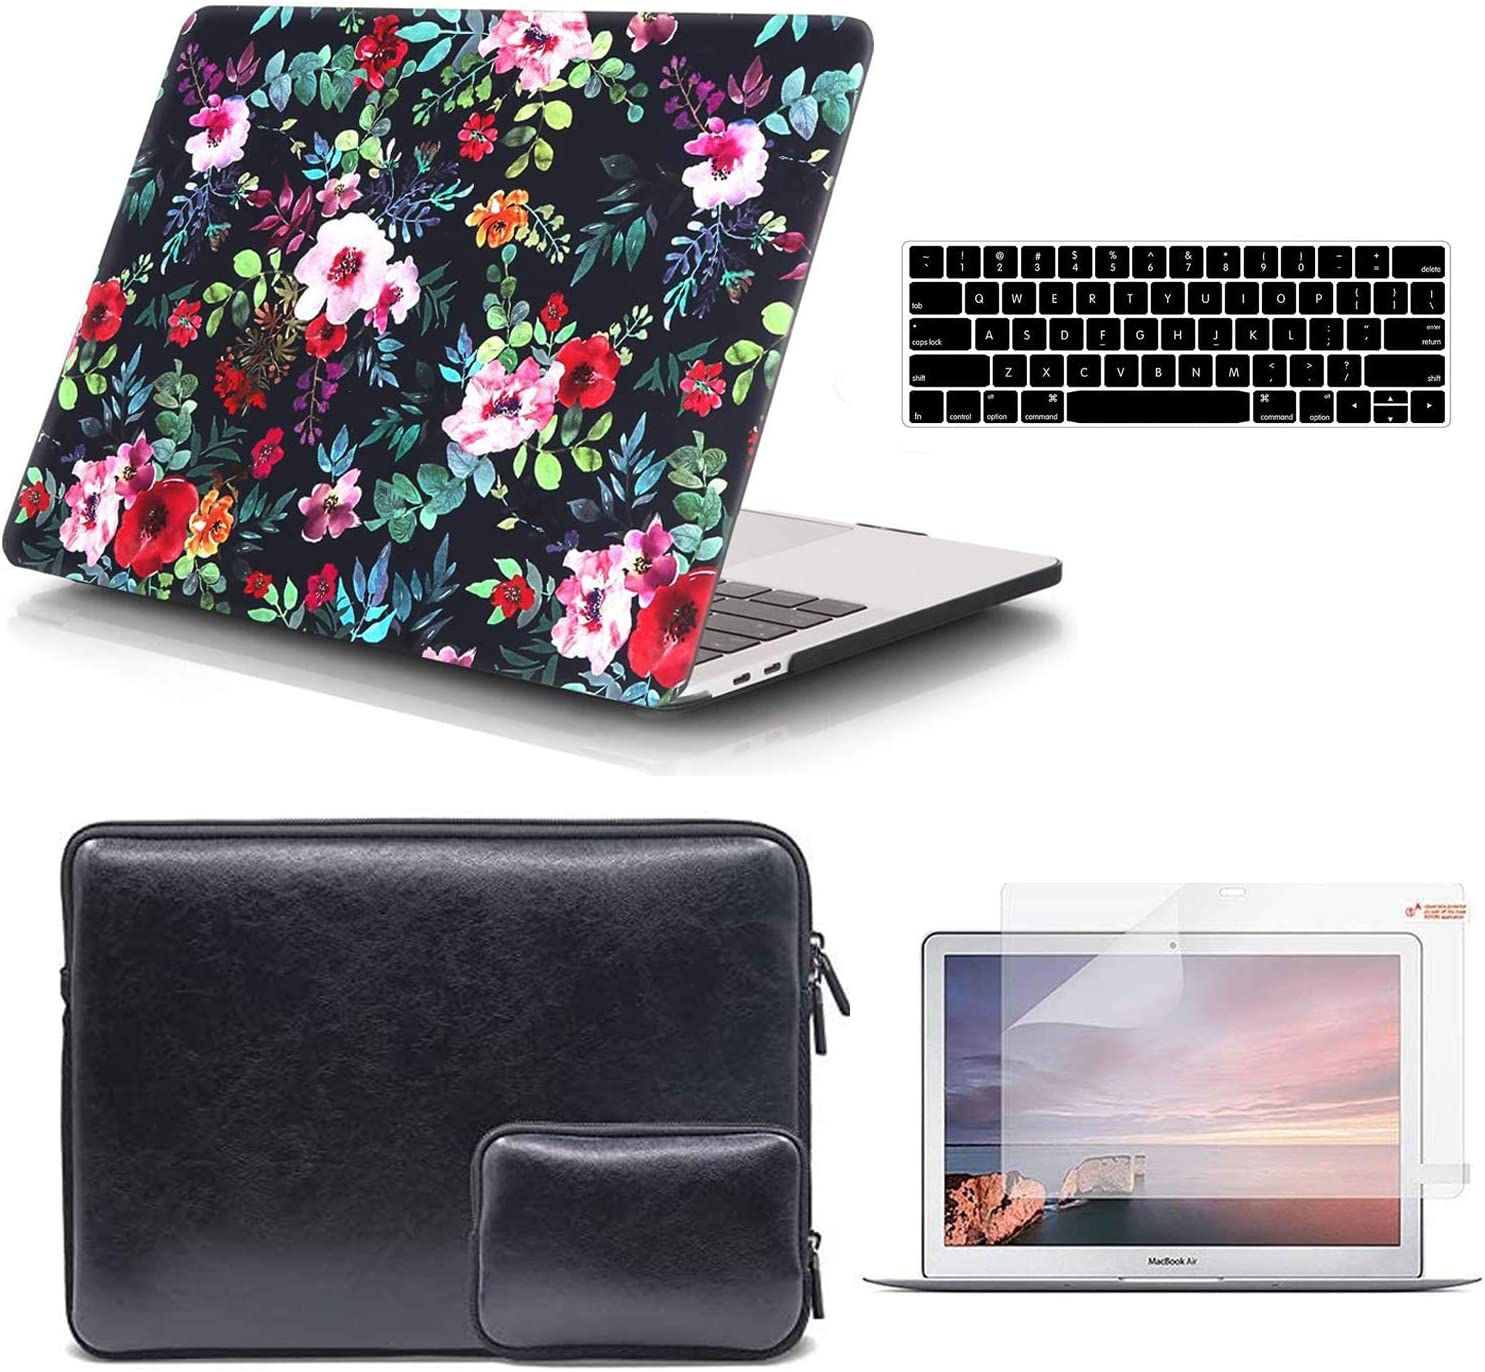 iCasso MacBook Pro 13 inch Case and Waterproof PU Leather Carrying Case with Small Bag, Compatible with MacBook 2019 2018 2017 2016 Release A2159/A1989/A1706/A1708, Plastic Hard Shell Case & Sleeve